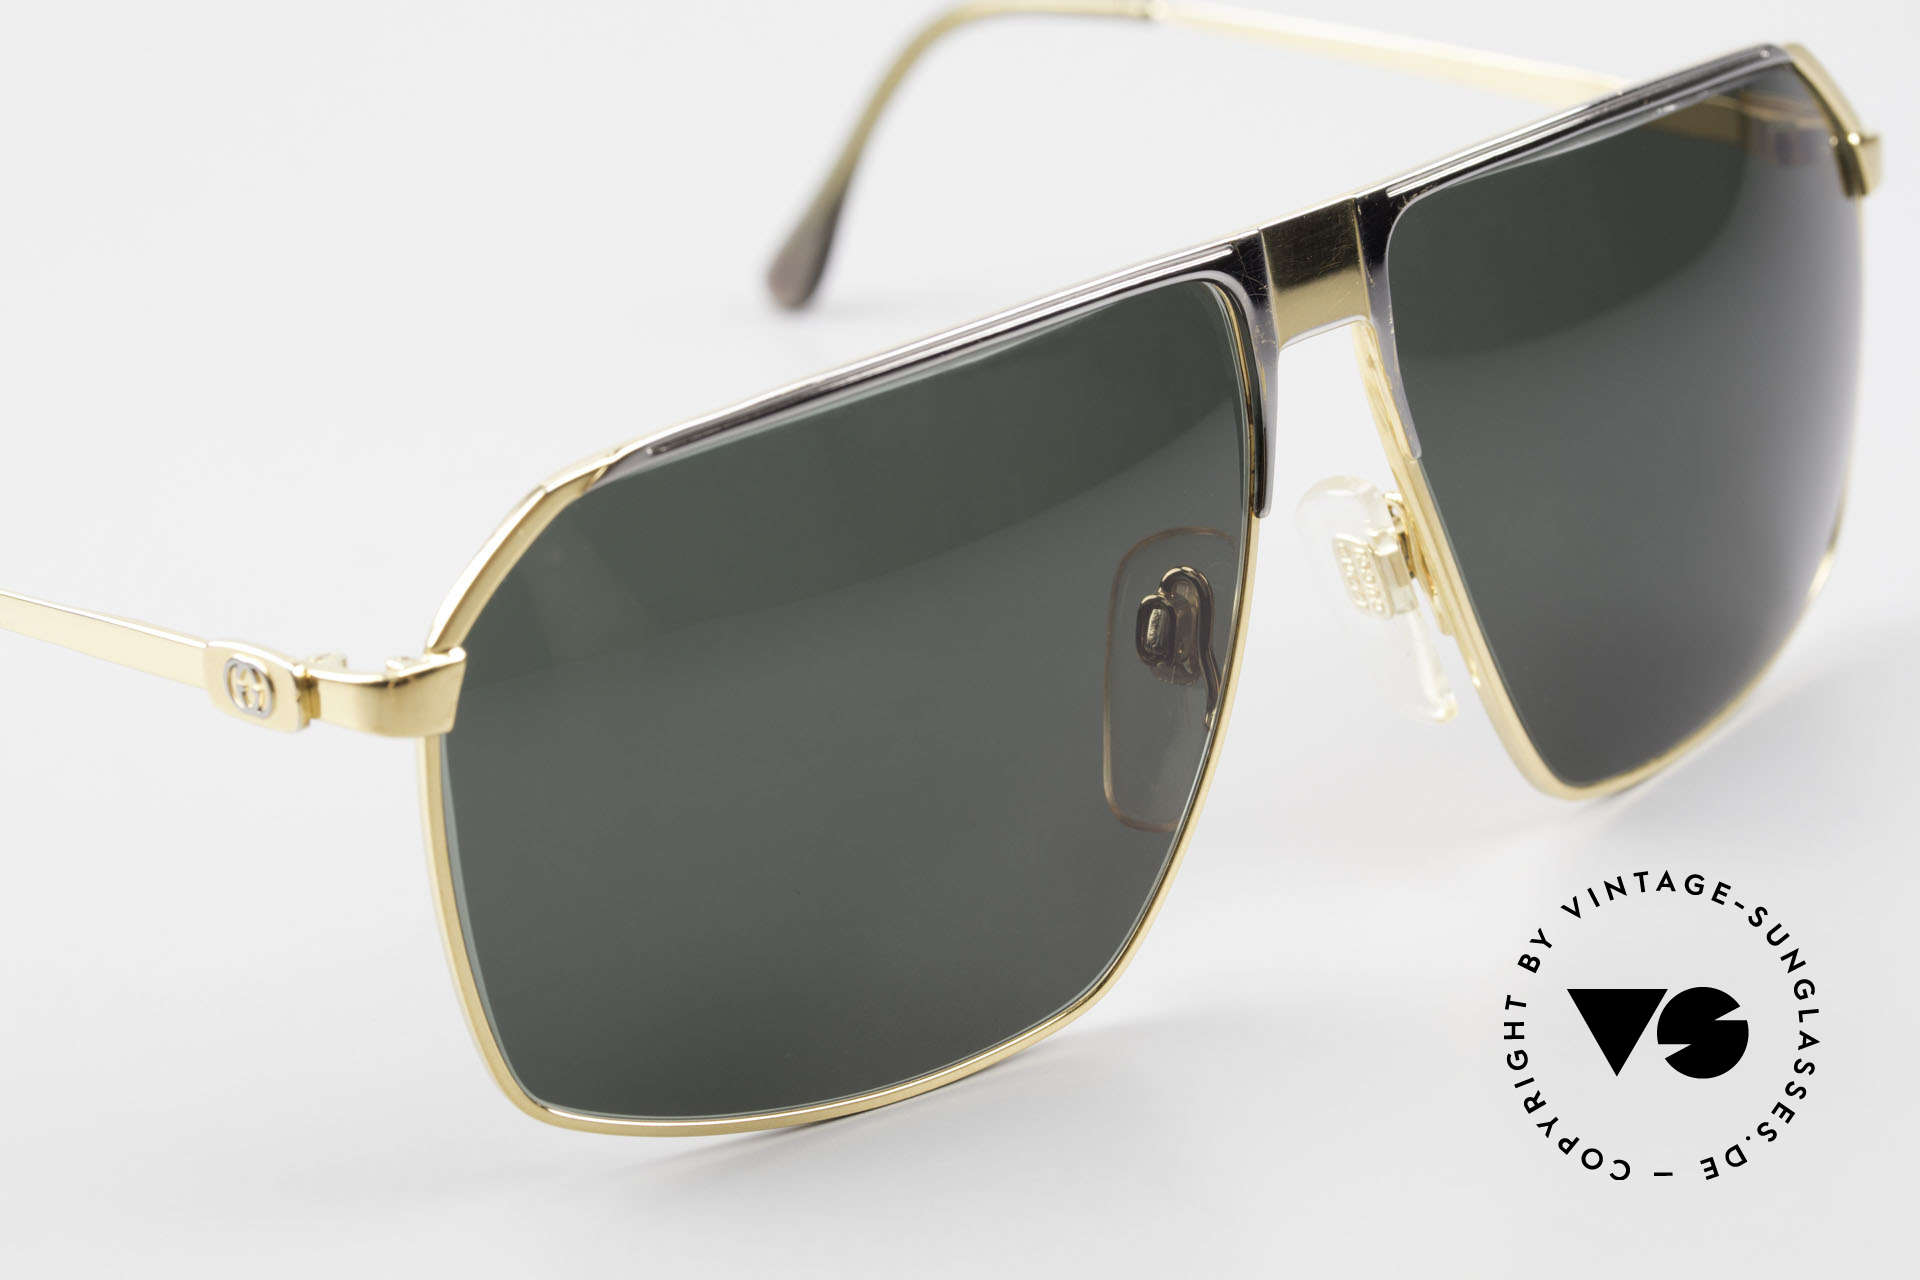 Gucci GG41 22kt Gold-Plated Sunglasses, 2. hand in great vintage condition (incl. Gucci case), Made for Men